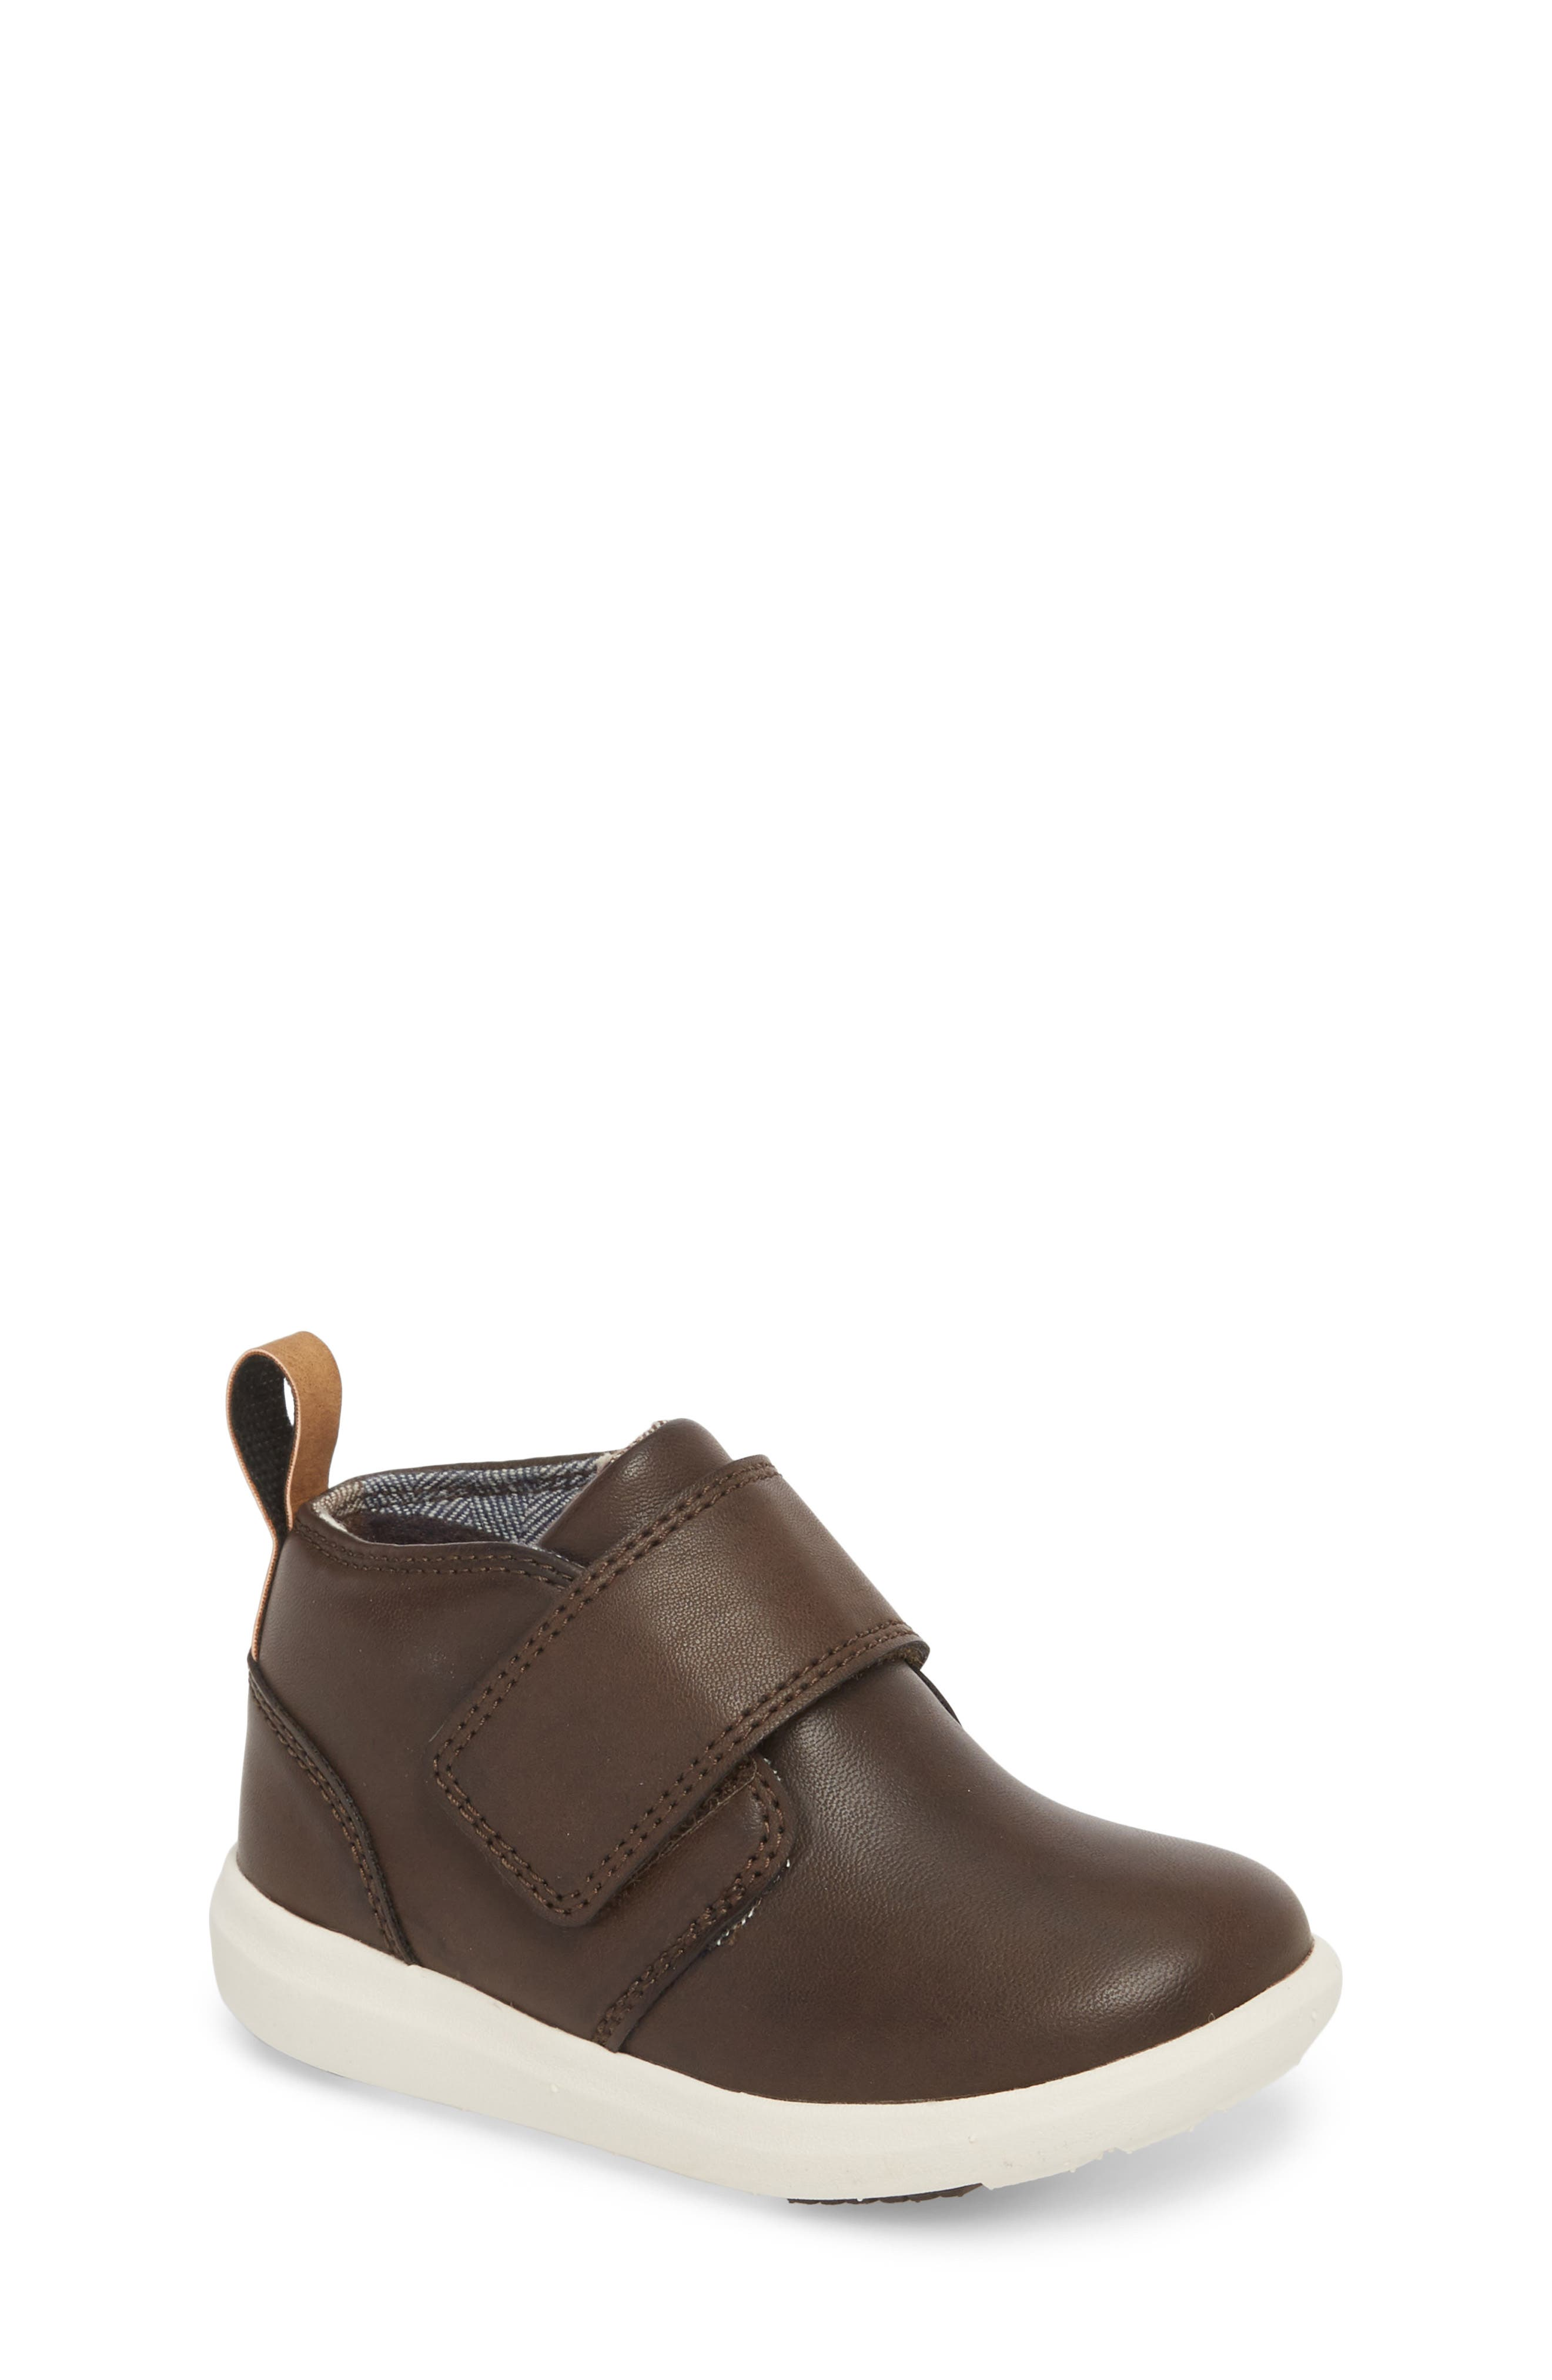 Oliver Low Bootie Sneaker,                             Main thumbnail 1, color,                             CHOCOLATE FAUX LEATHER